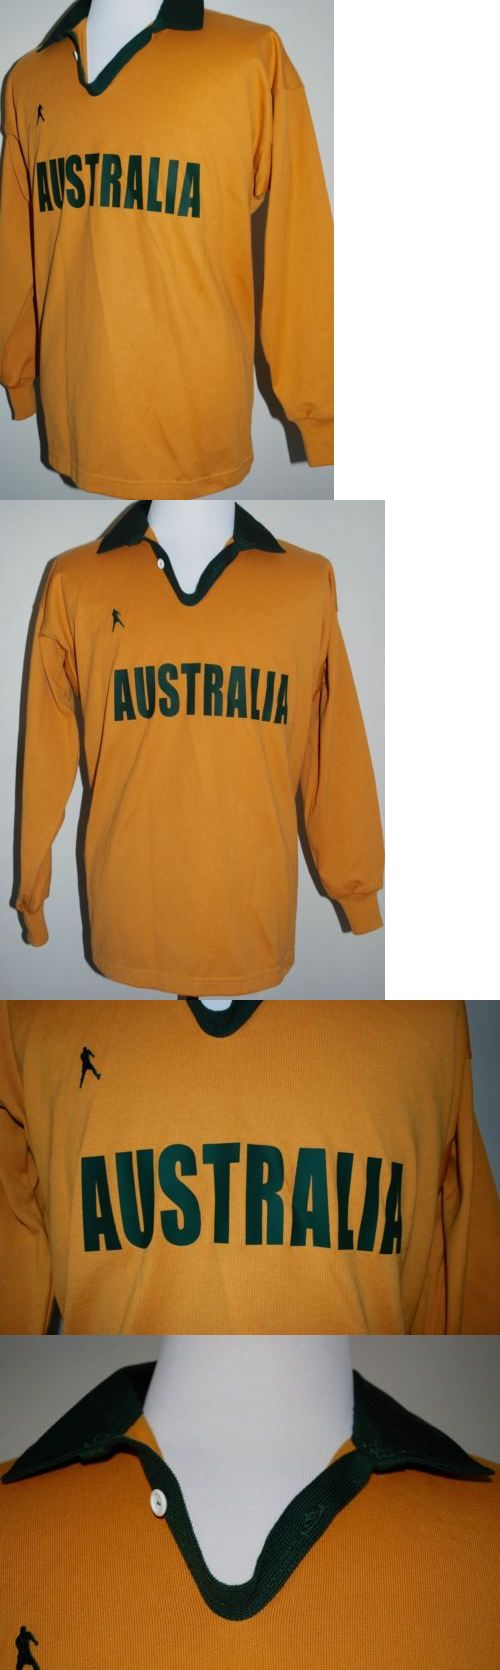 Rugby 21563: New! Australia Wallabies Rugby Jersey Trikot Shirt - Thick Cotton - Mens Large -> BUY IT NOW ONLY: $49.99 on eBay!